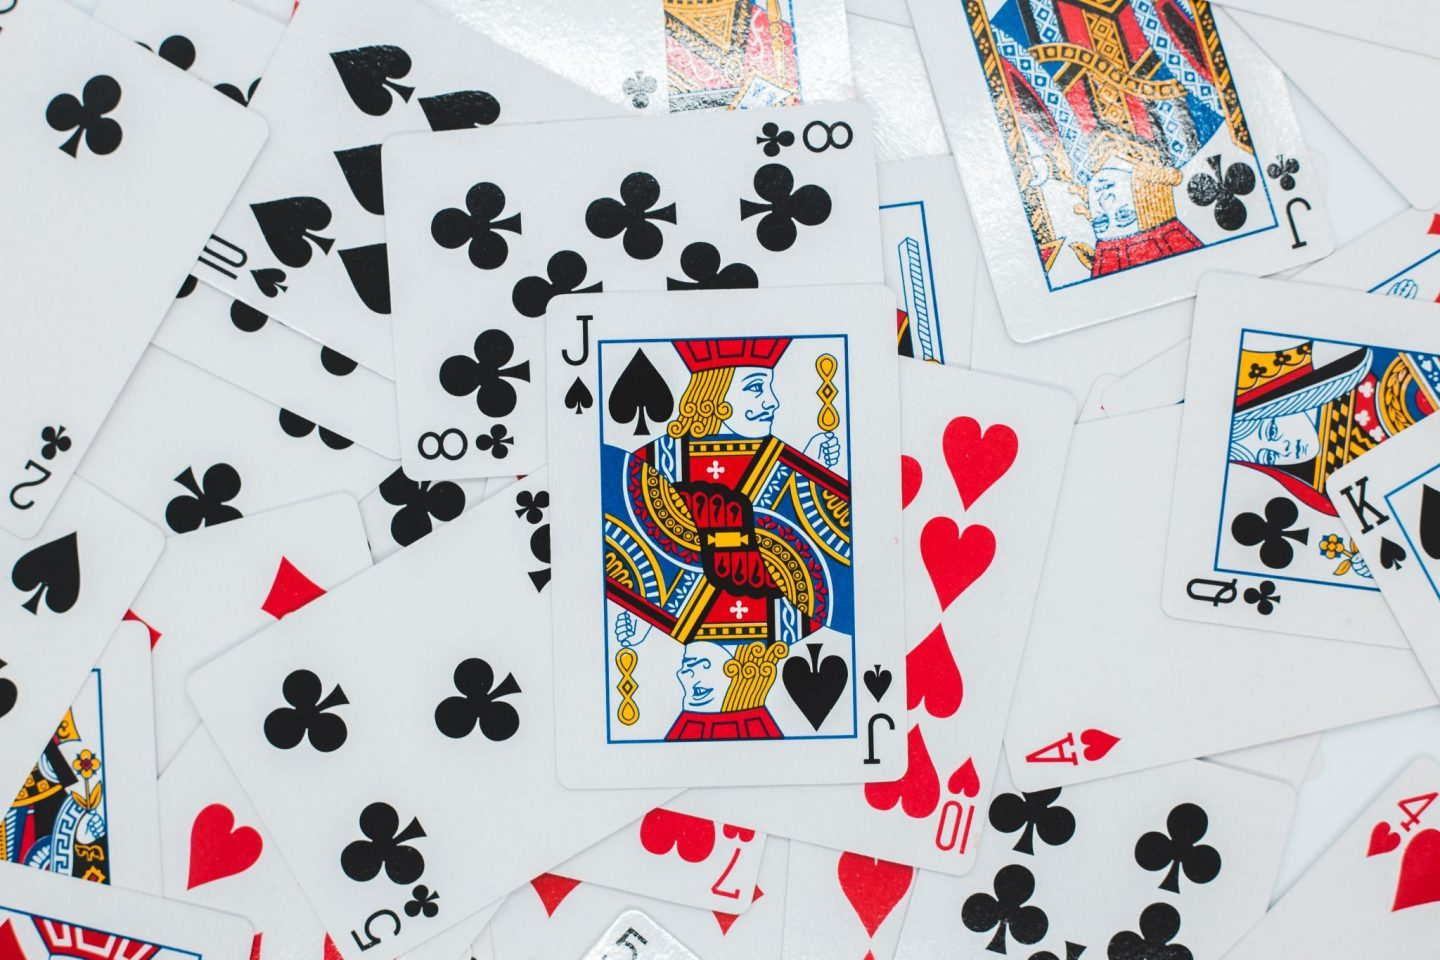 THE LURE OF CARD GAMES